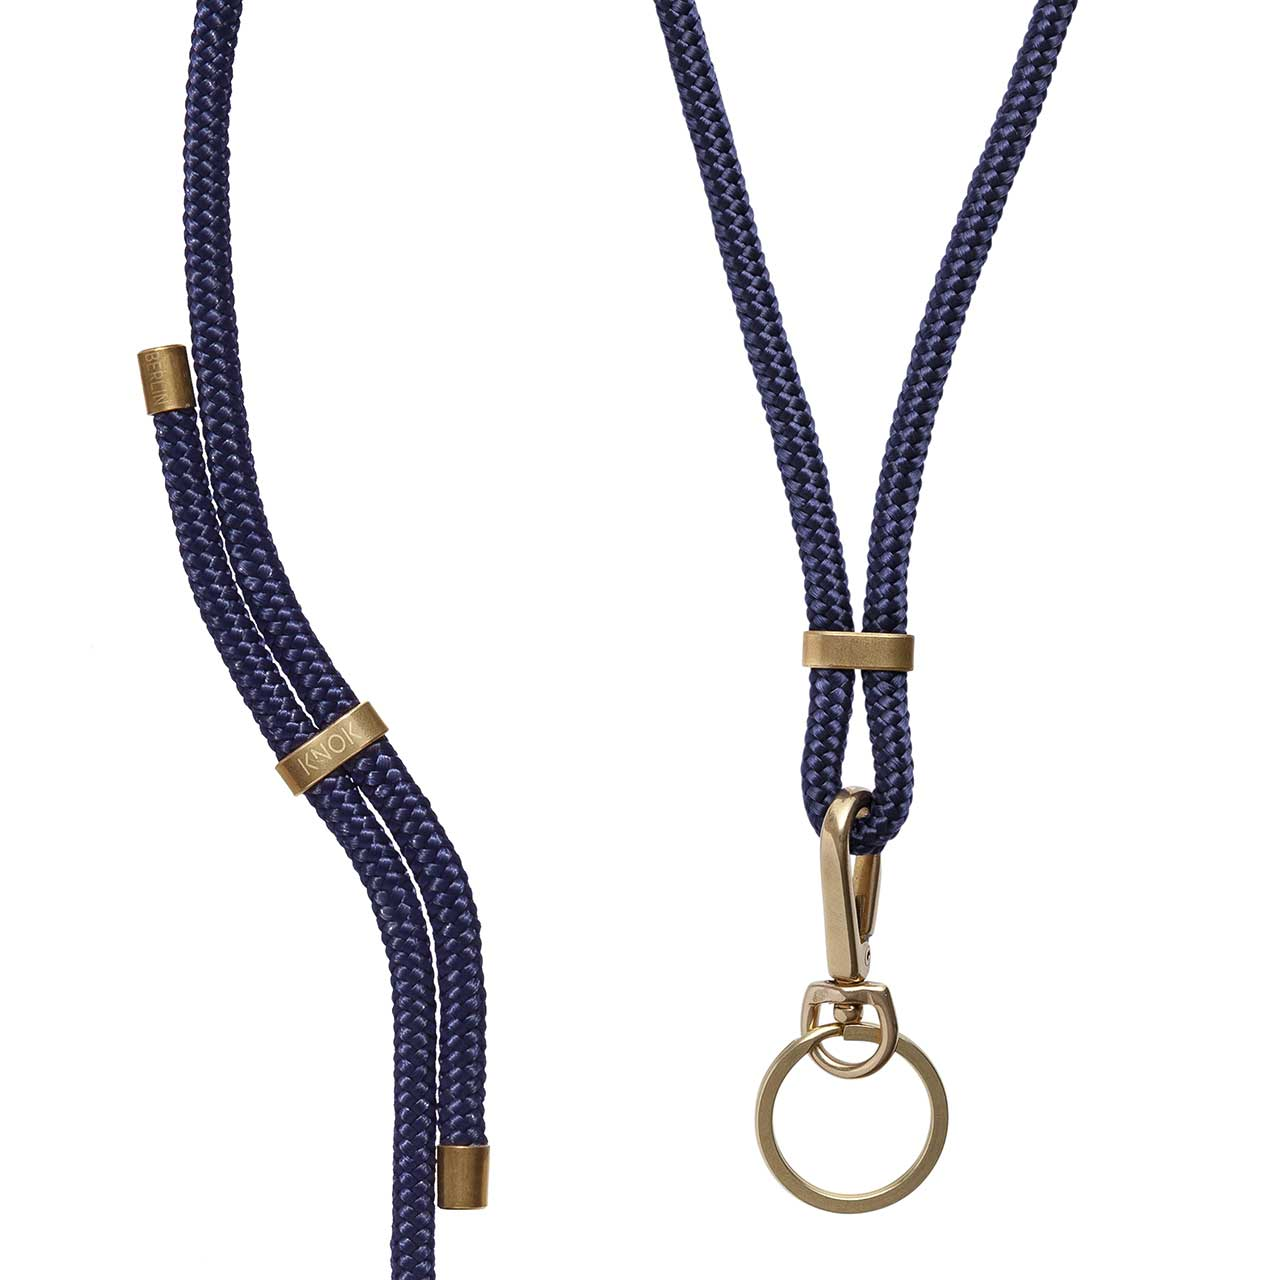 KEY HOLDER (NAVY)